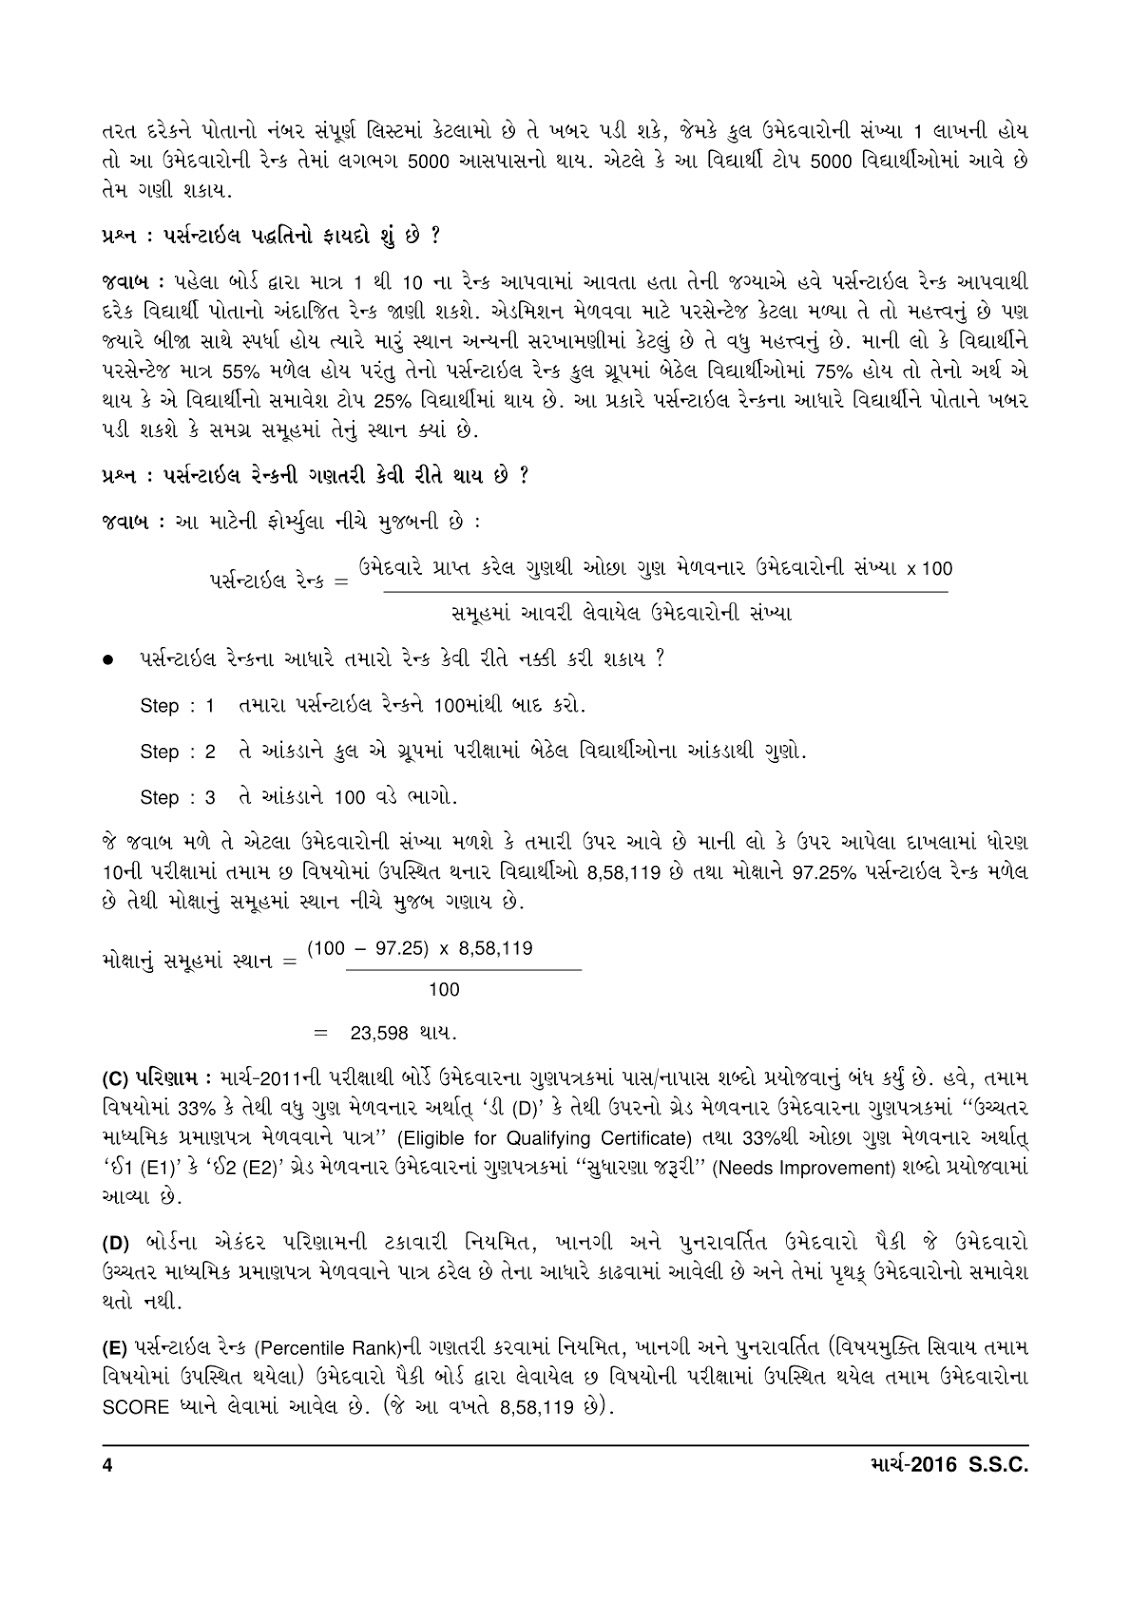 Know About Calculation of Percentile Rank in GSEB Exam